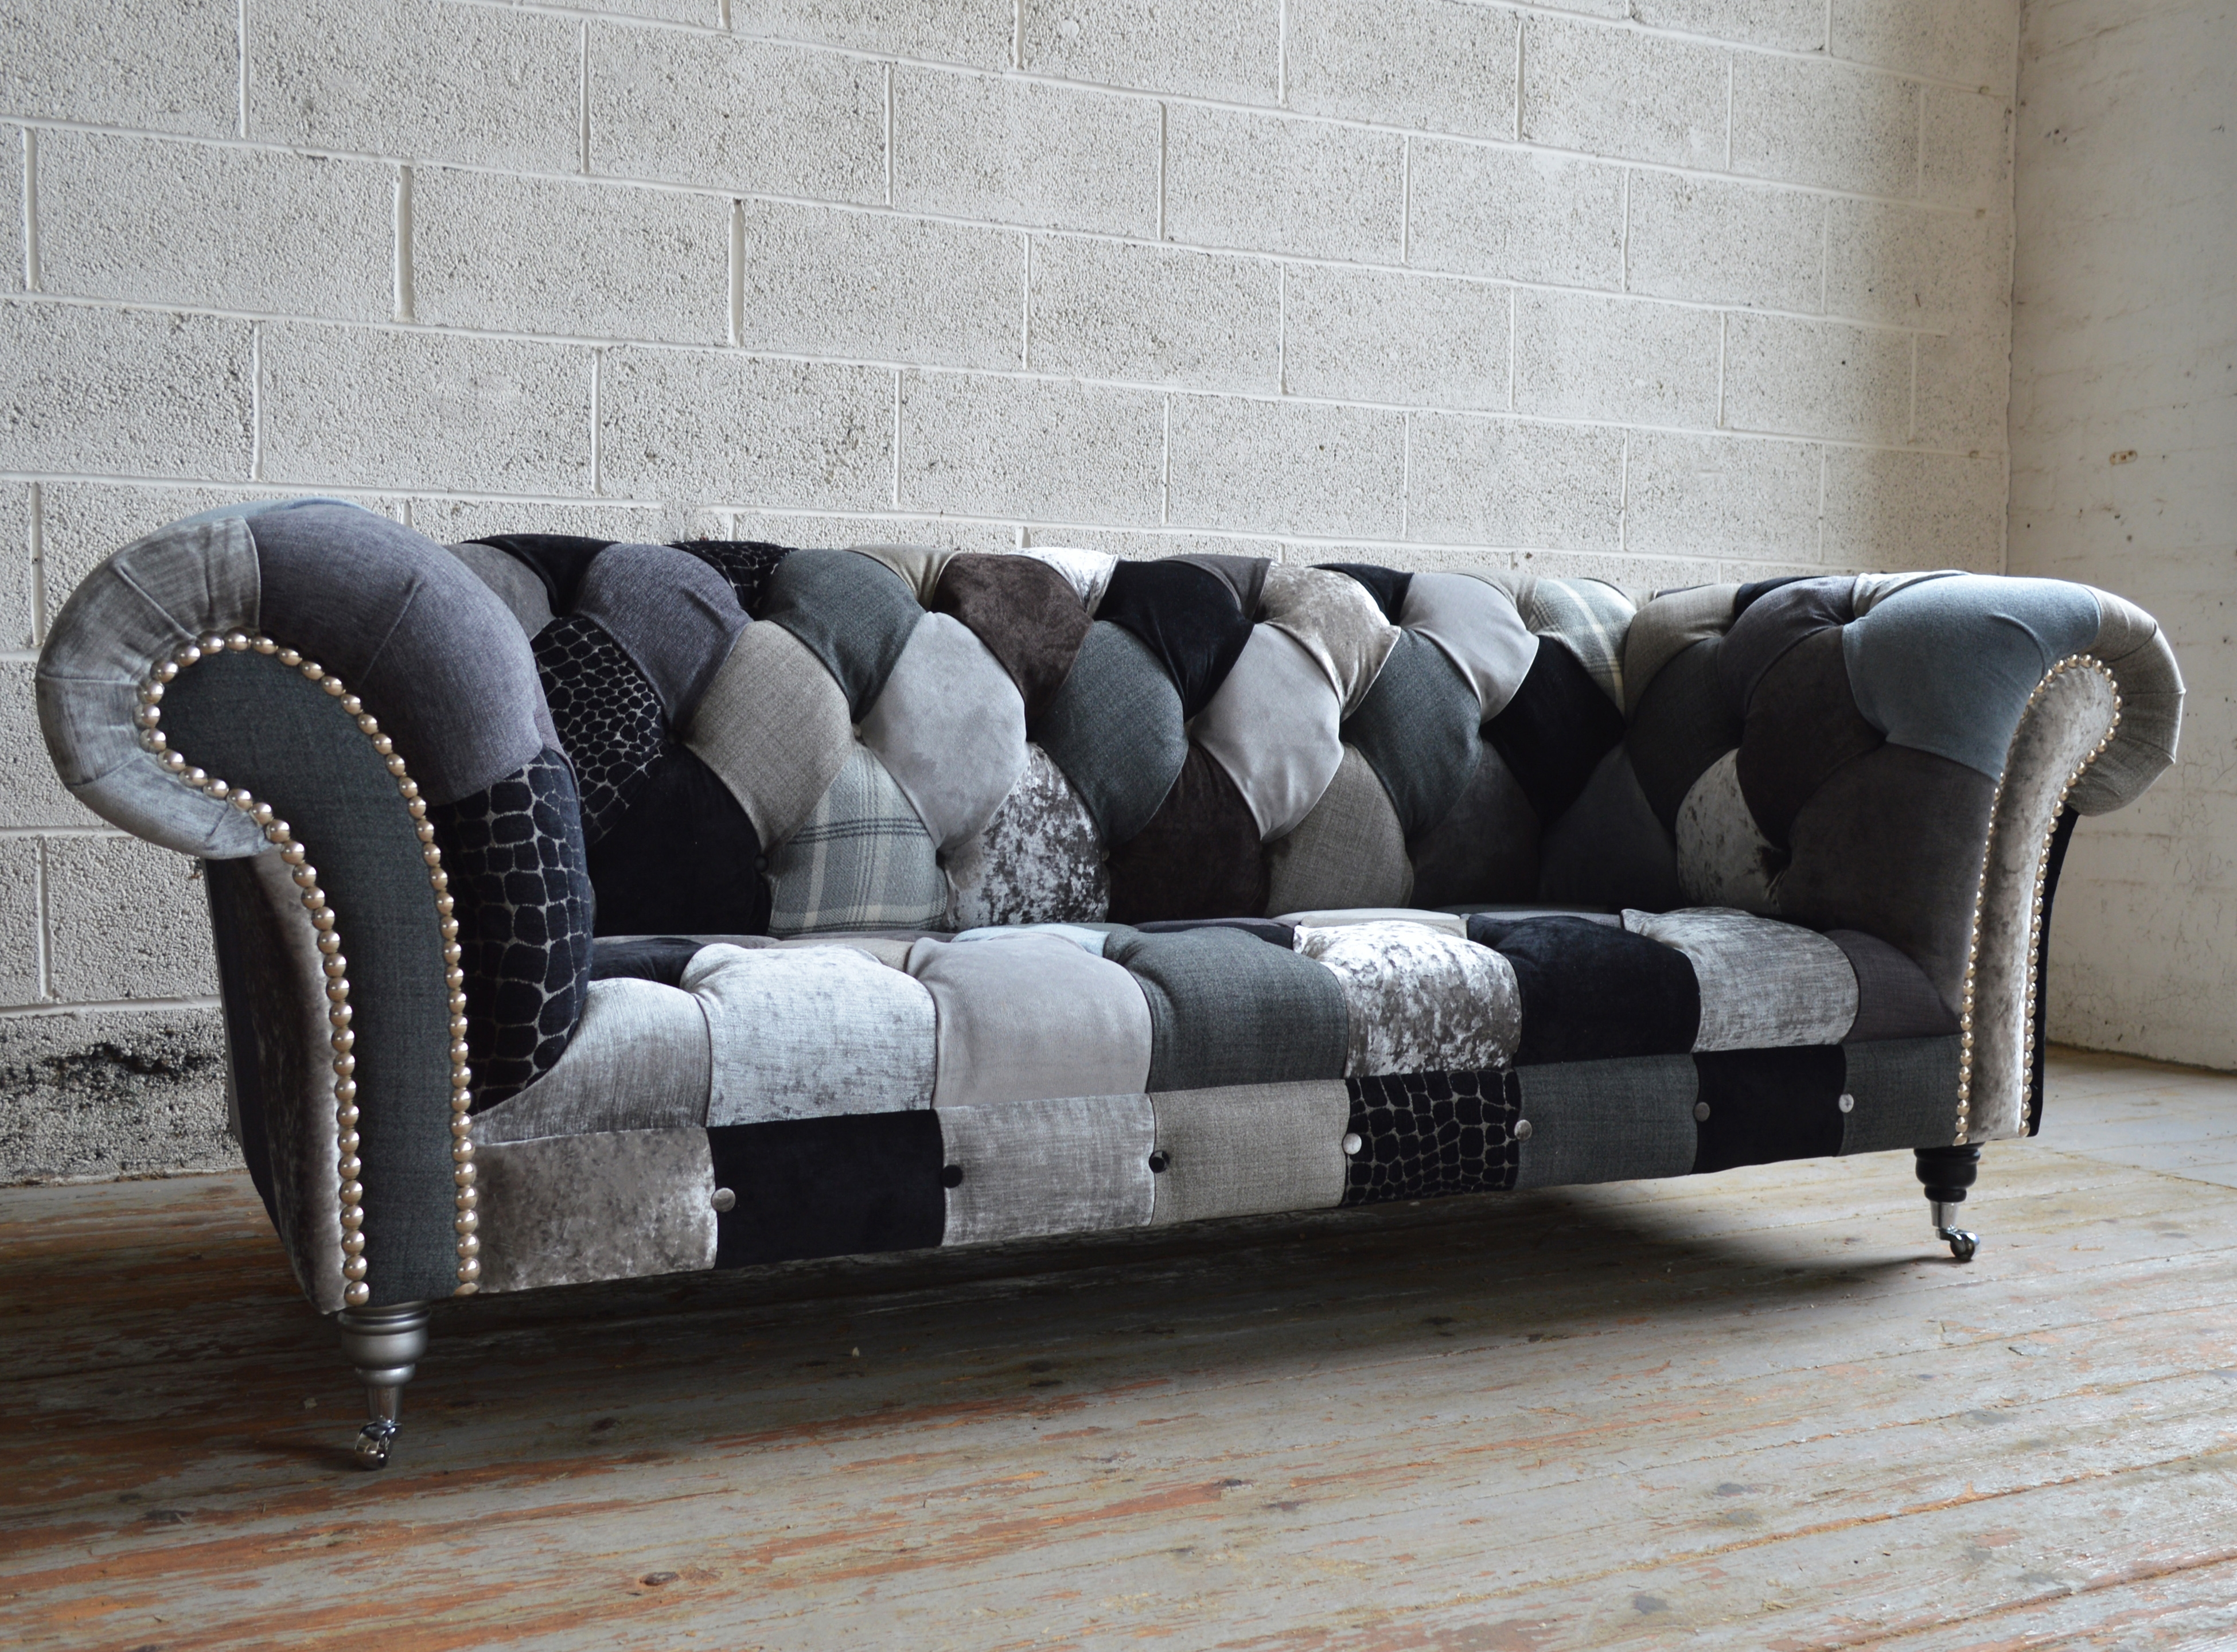 Monochrome Walton Patchwork Chesterfield Sofa Abode Sofas With Regard To Chesterfield Furniture (Image 15 of 15)